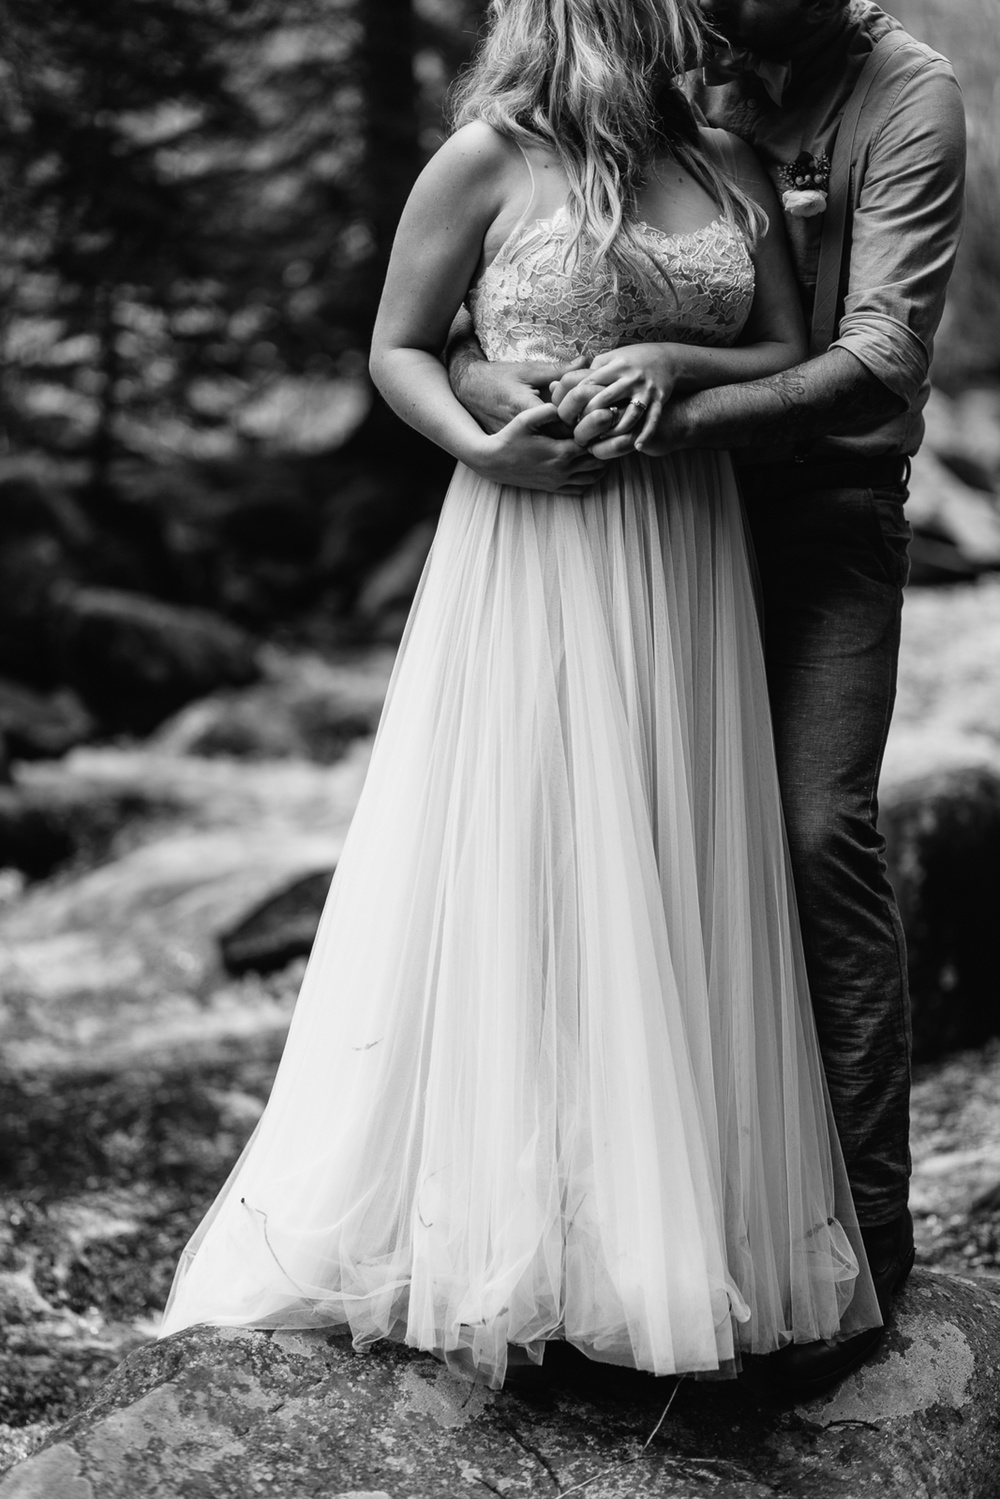 073-vail-elopement-photographer-chris-and-tara.jpg